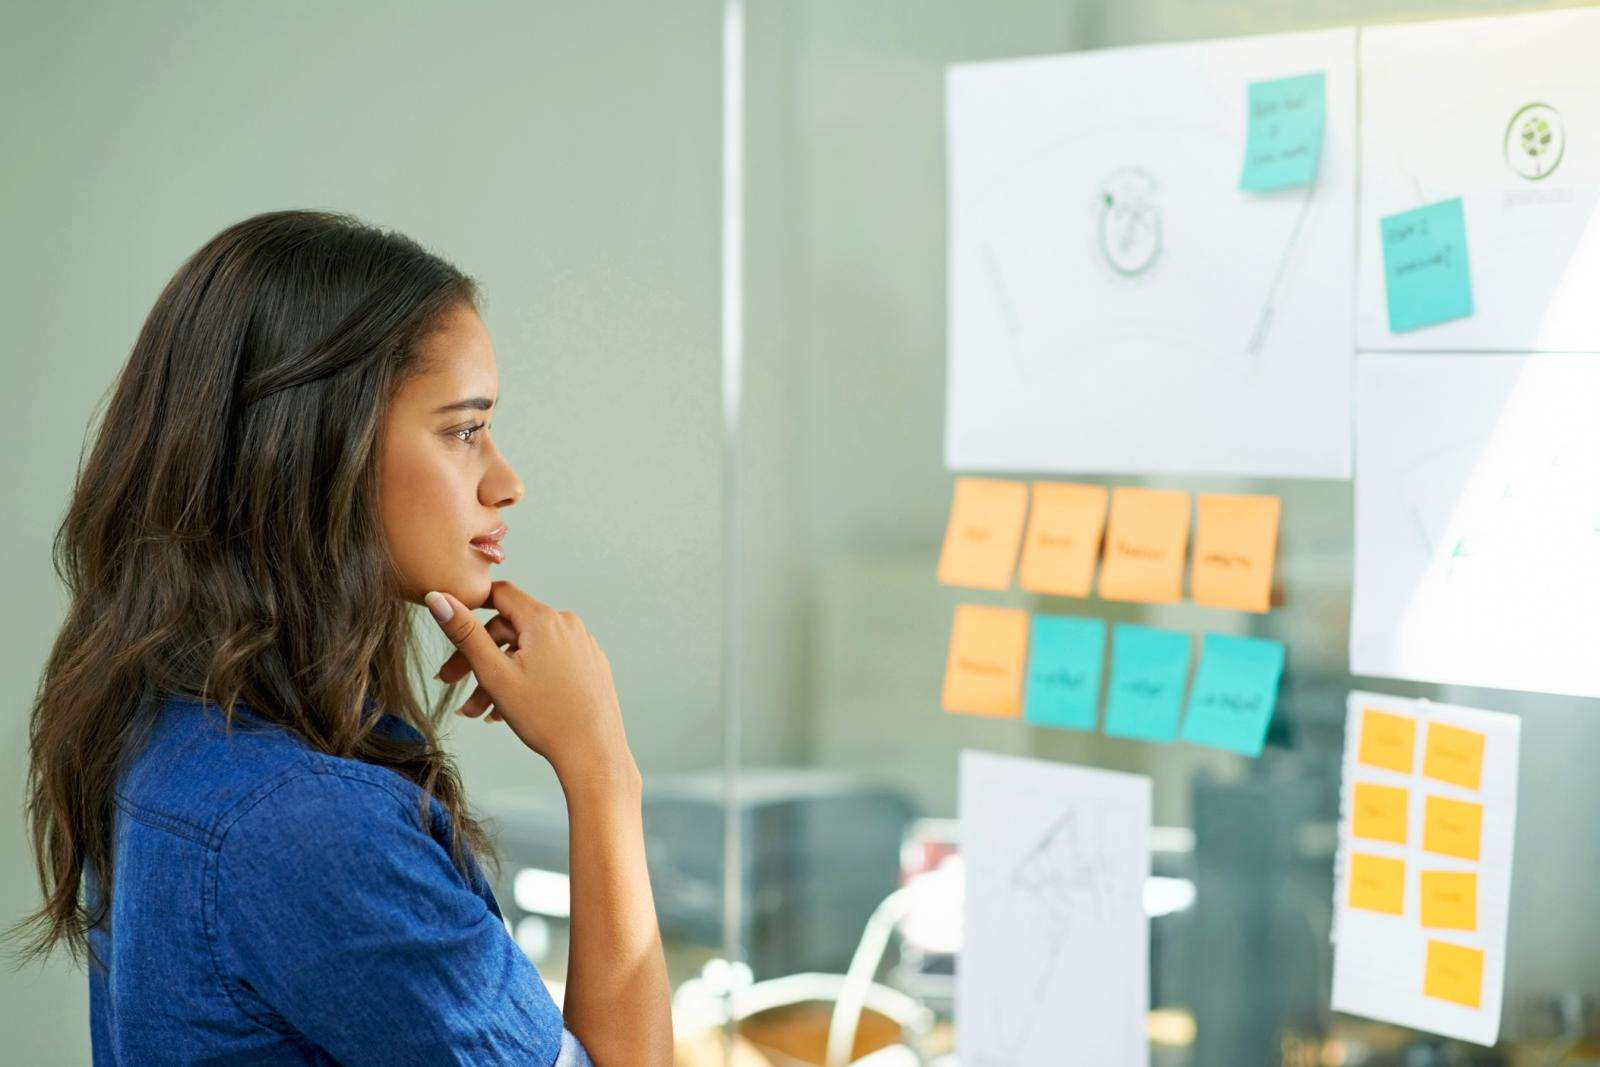 Young woman brainstorming with sticky notes at work